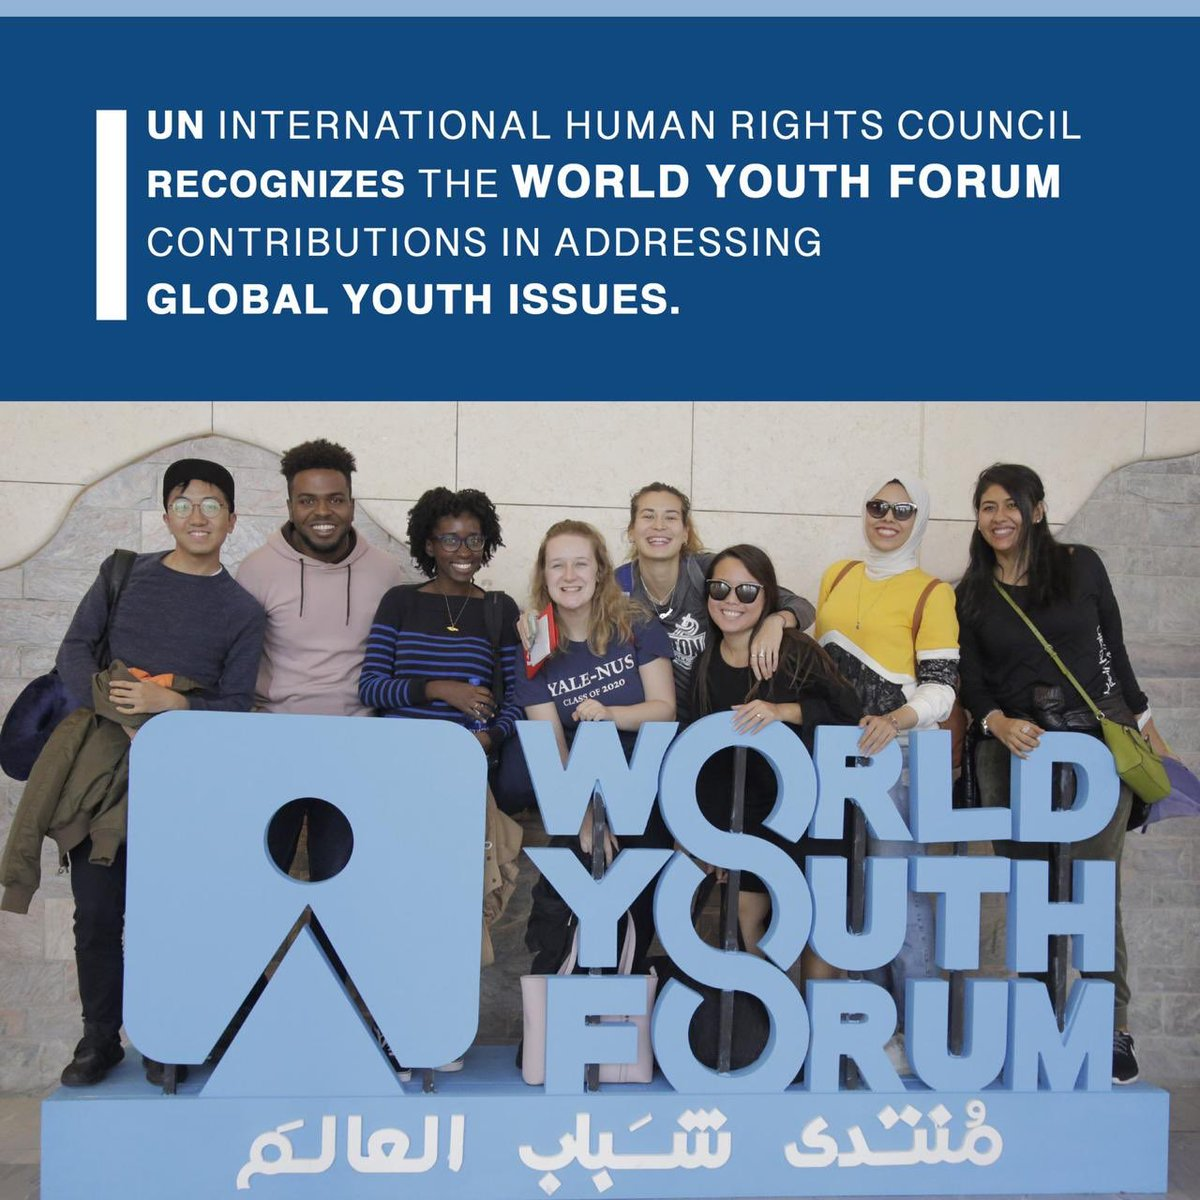 UN International Human Rights Council recognizes the World Youth Forum Contributions in addressing global youth issue. #WorldYouthForum For more information: facebook.com/19305241604954…